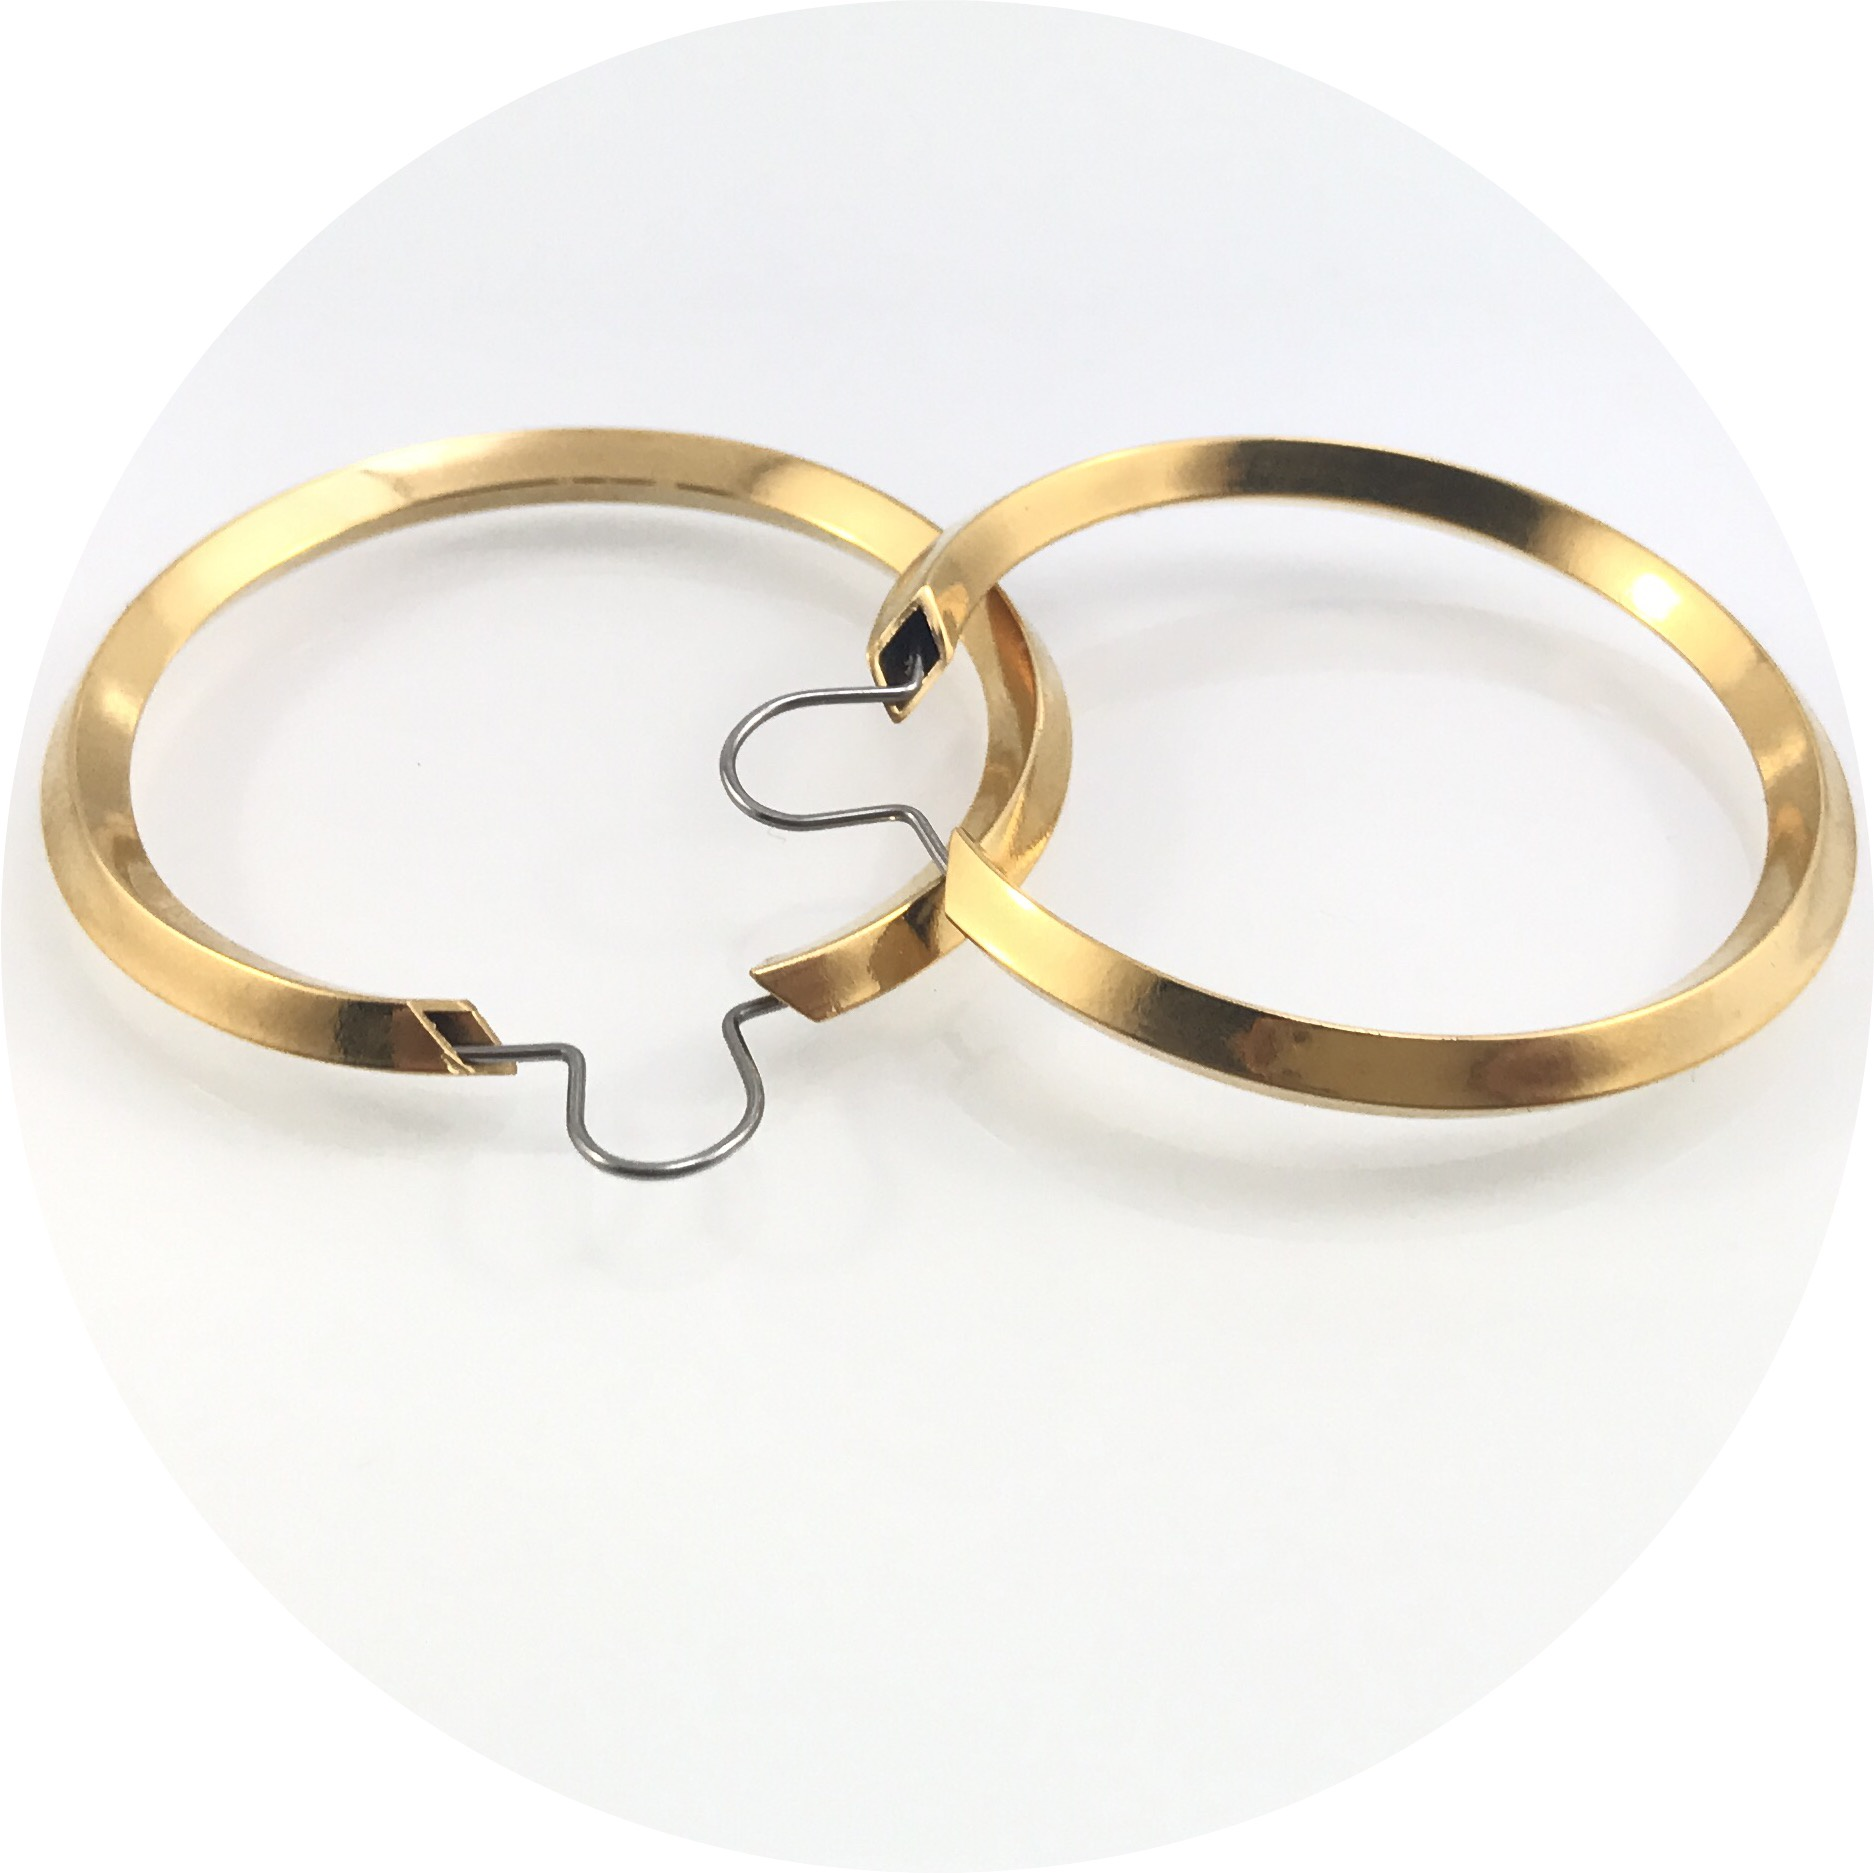 Kristina Neumann - Original Tube Gold Plated Sterling Silver Hoops